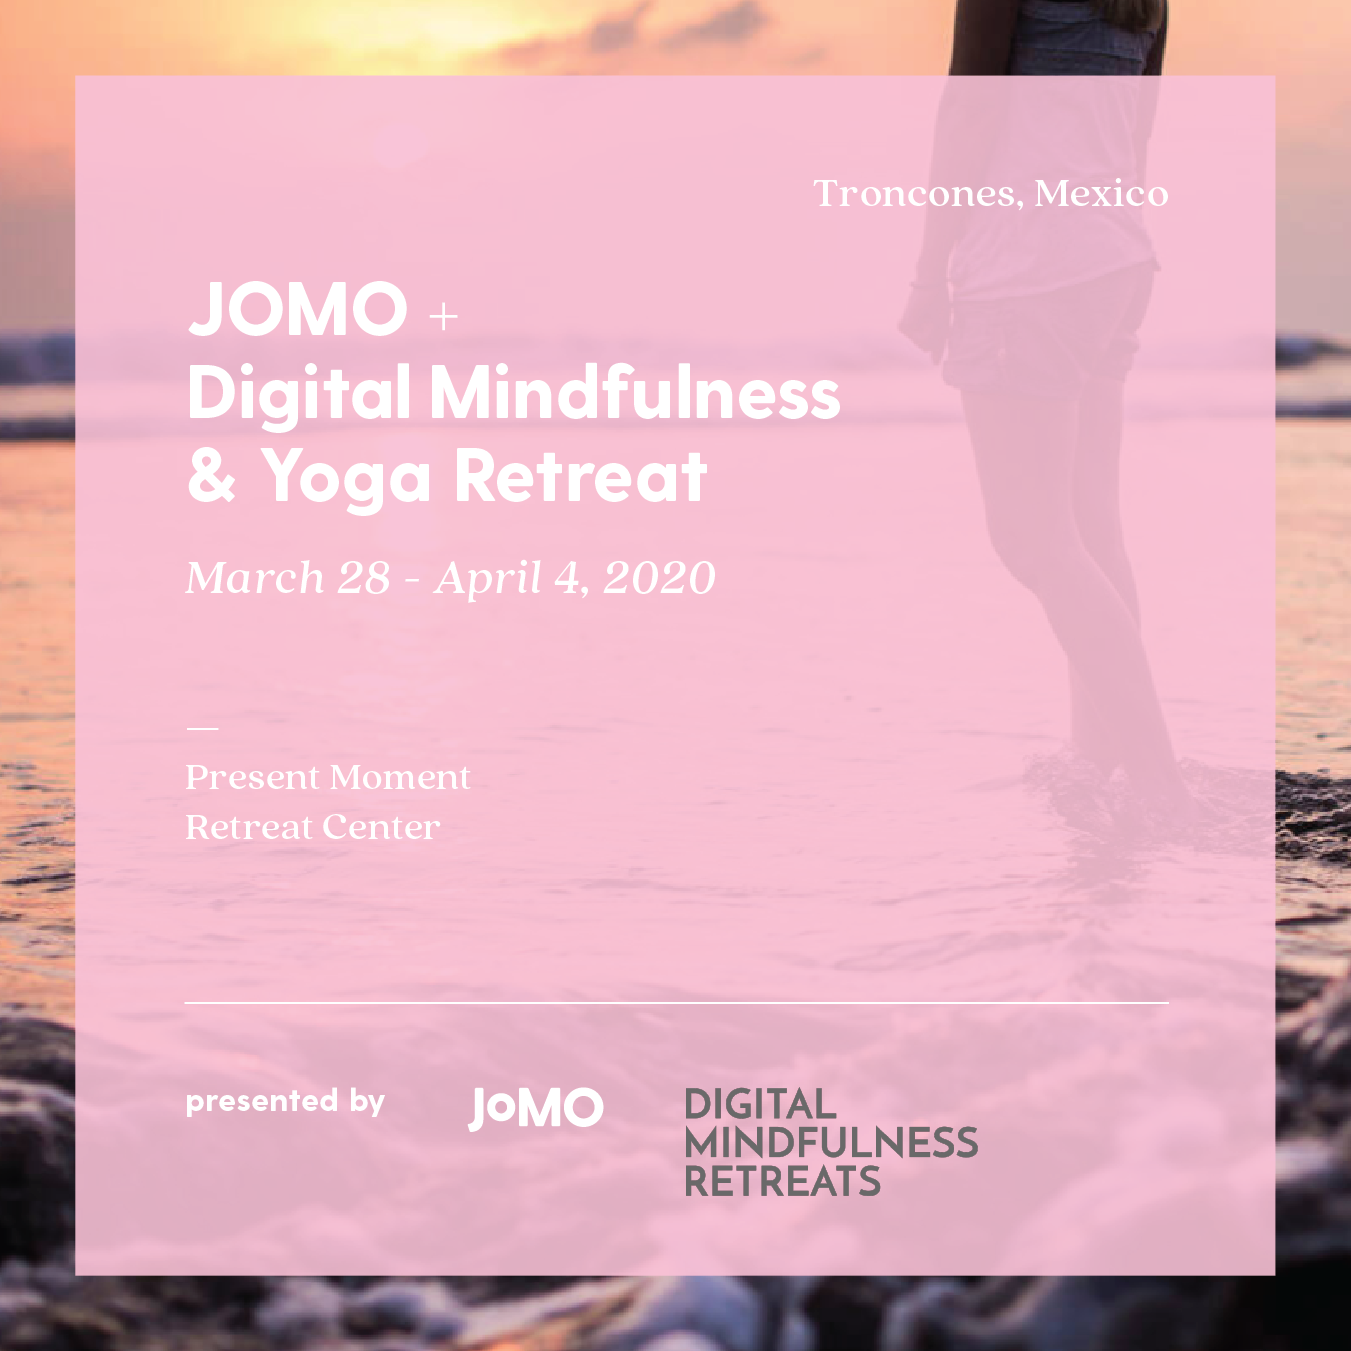 JOMO_TronconesMexJDMRetreat_March2020_IG_Feed.png